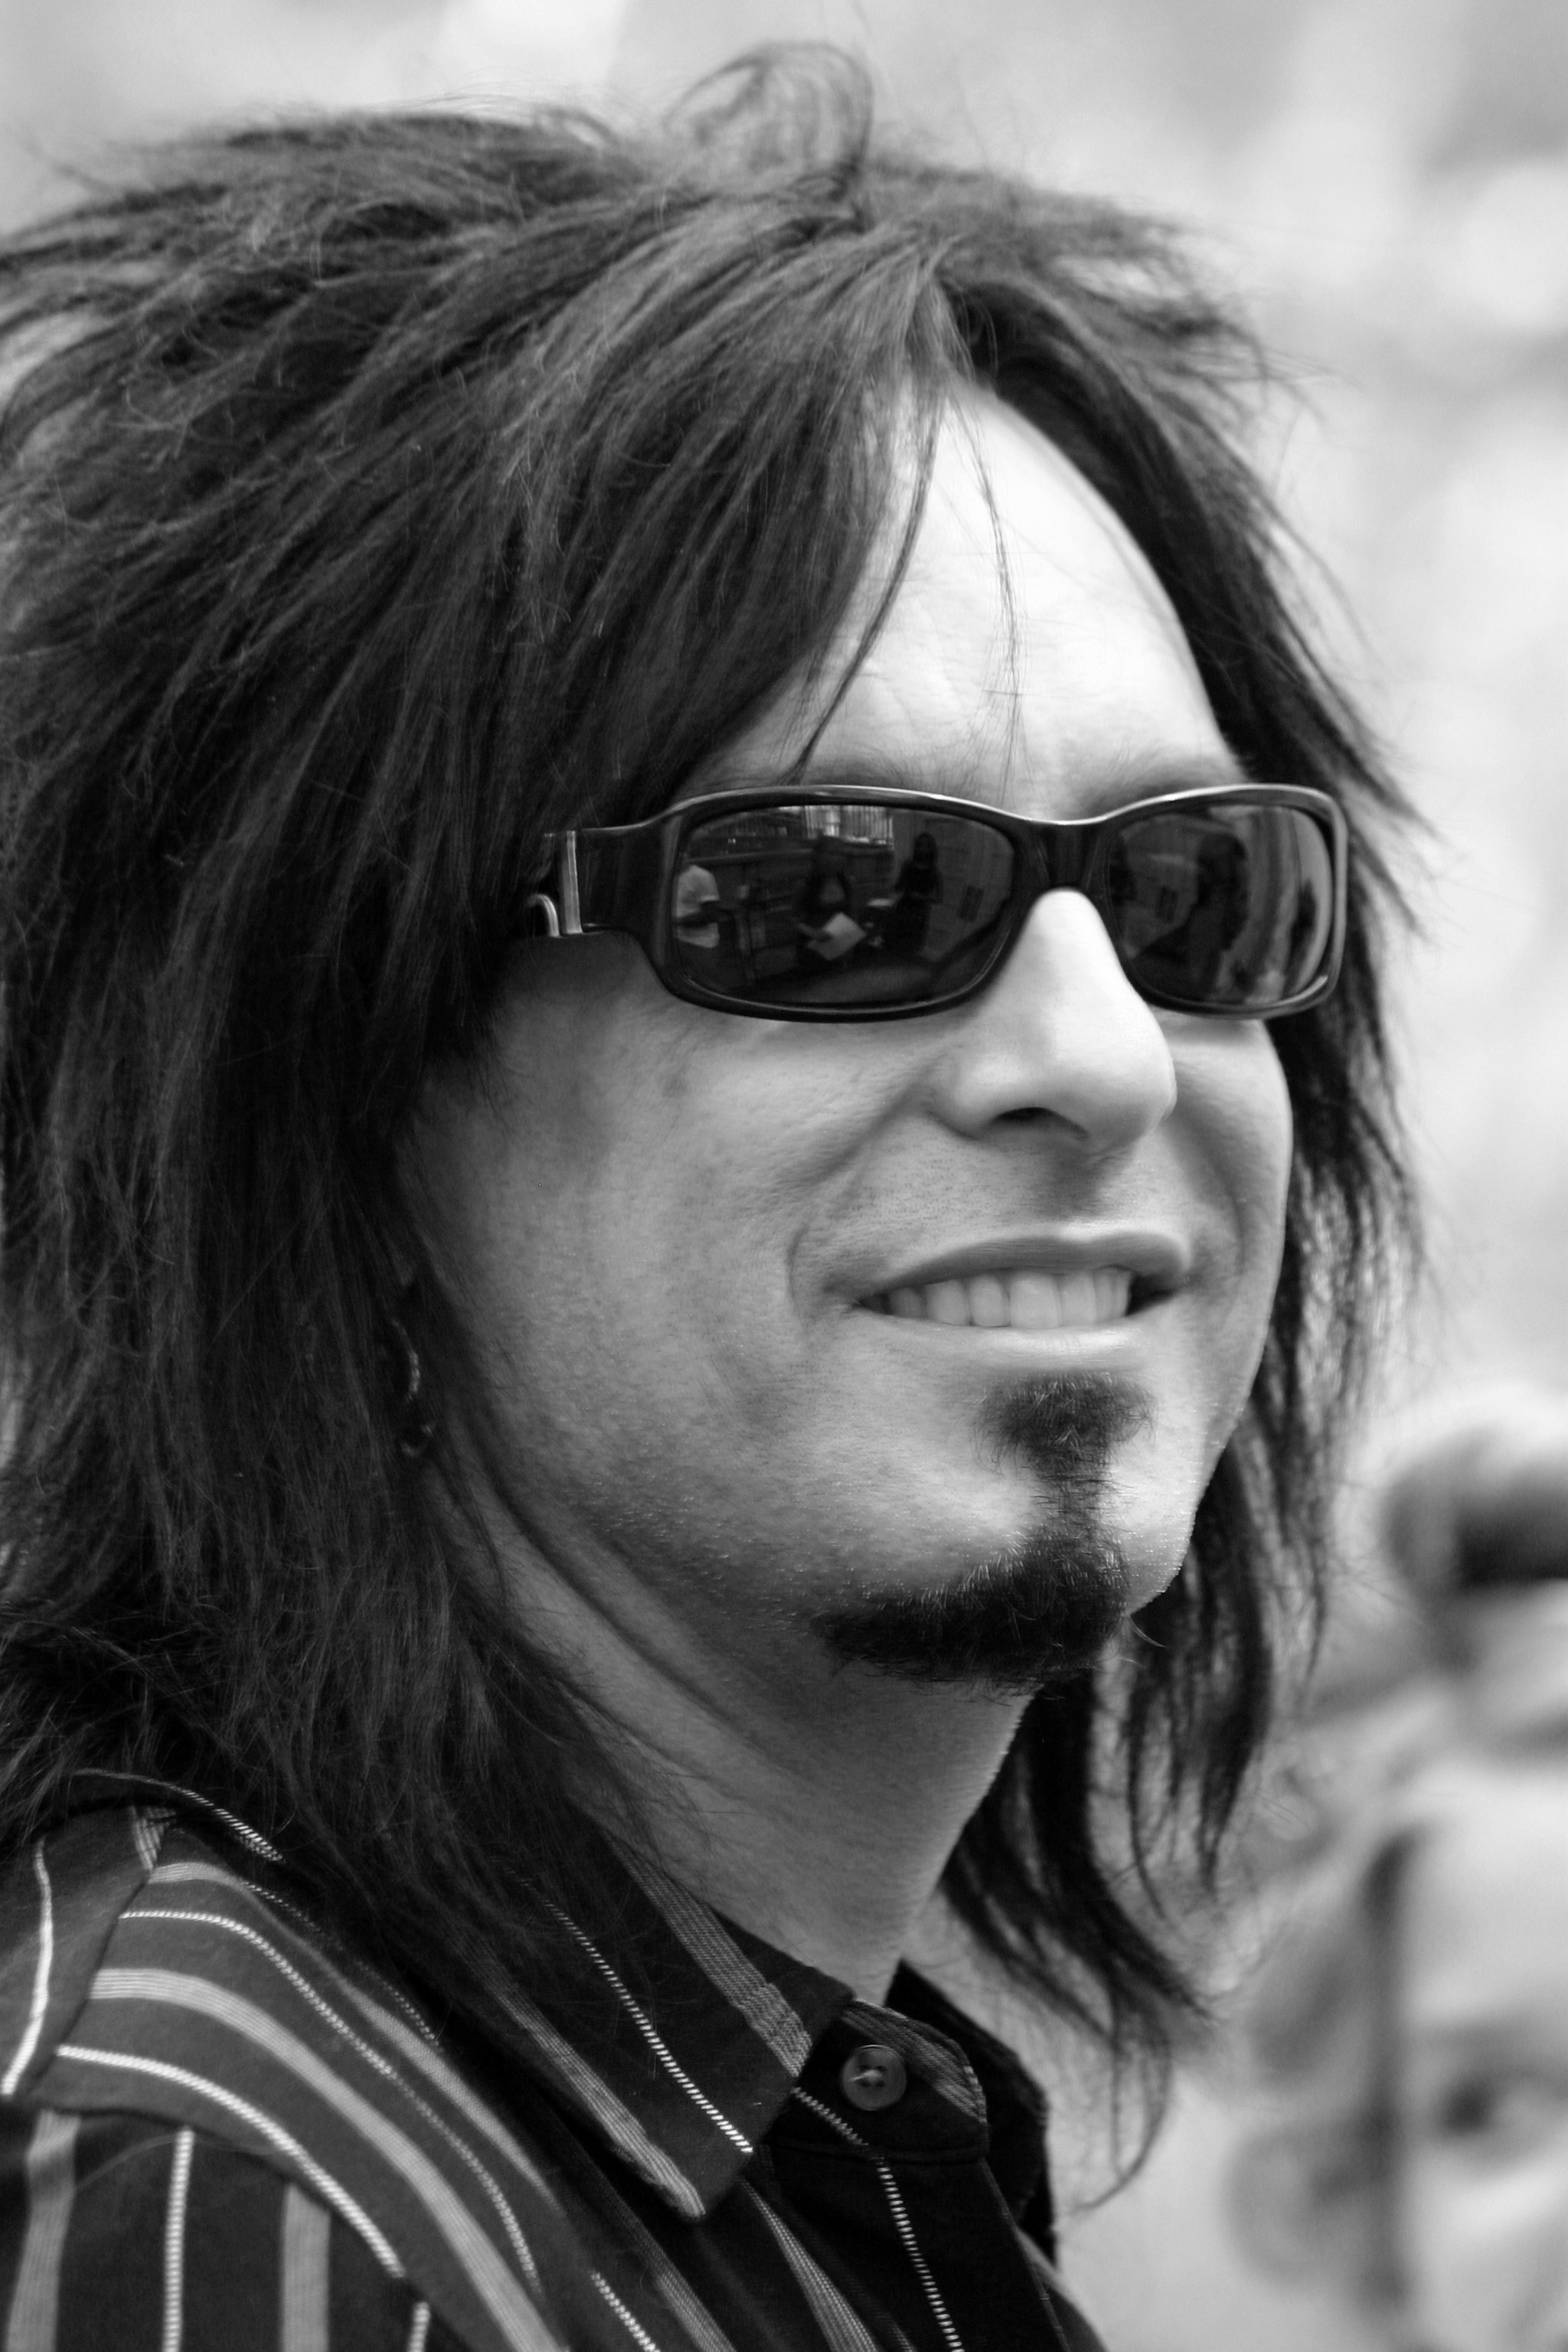 Nikki Sixx - Wikipedia, the free encyclopedia